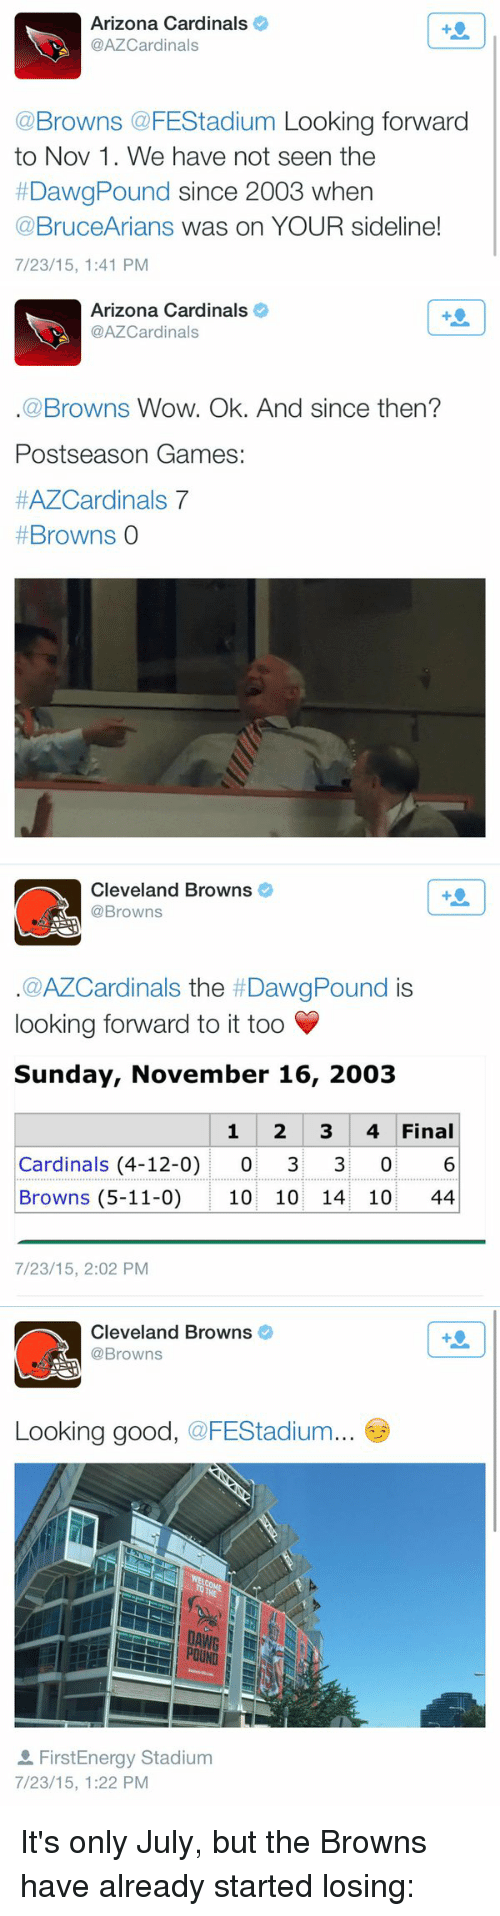 Arizona Cardinals: Arizona Cardinals  @AZCardinals  @Browns @FEStadium Looking forward  to Nov 1. We have not seen the  DawgPound since 2003 when  @BruceArians was on YOUR sideline!  7/23/15, 1:41 PM   n Arizona Cardinals  o  @AZCardinals  Browns Wow. Ok. And since then?  Postseason Games  HAZCardinals 7  Browns  0   Cleveland Browns  @Browns  a AZCardinals the DawgPound  is  looking forward to it too V  Sunday, November 16, 2003  1 2 3 4 Final  Cardinals (4-12-0)  0 3 0 6  Browns (5-11-0) 10 10 14 10  44  7/23/15, 2:02 PM   Cleveland Browns  @Browns  Looking good, FEStadium  POUND  FirstEnergy Stadium  7/23/15, 1:22 PM It's only July, but the Browns have already started losing: